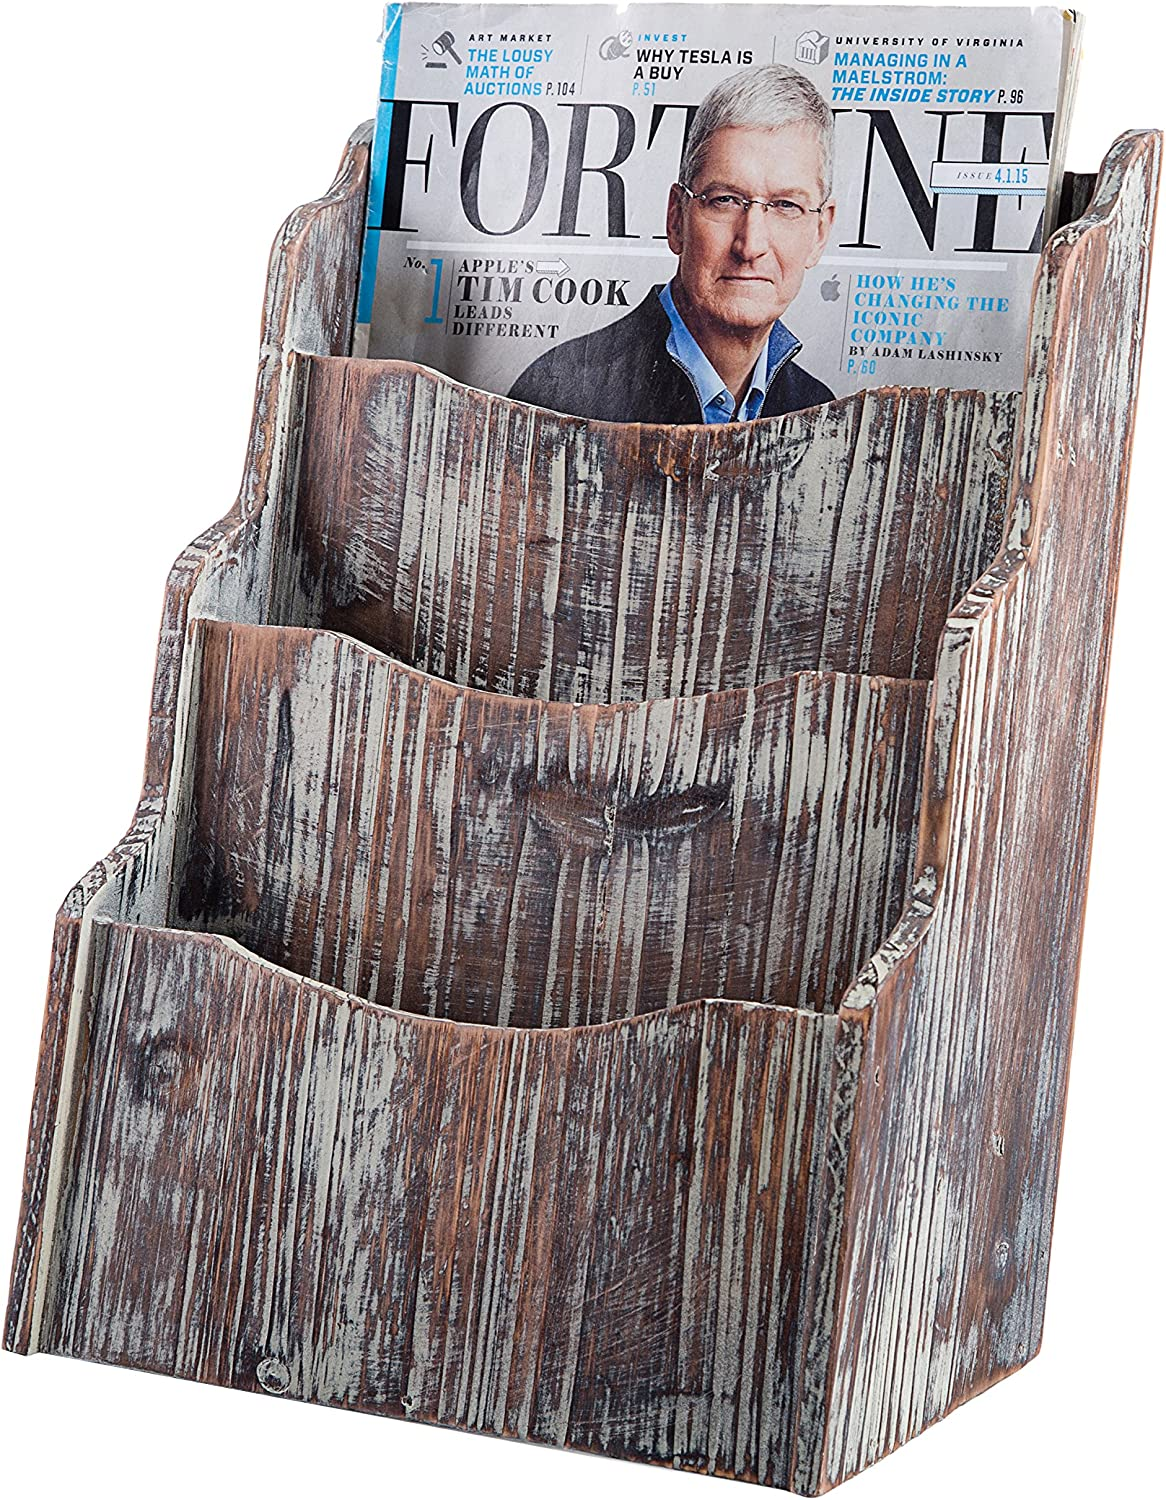 MyGift 3-Compartment Rustic Torched Wood Magazine Rack Holder